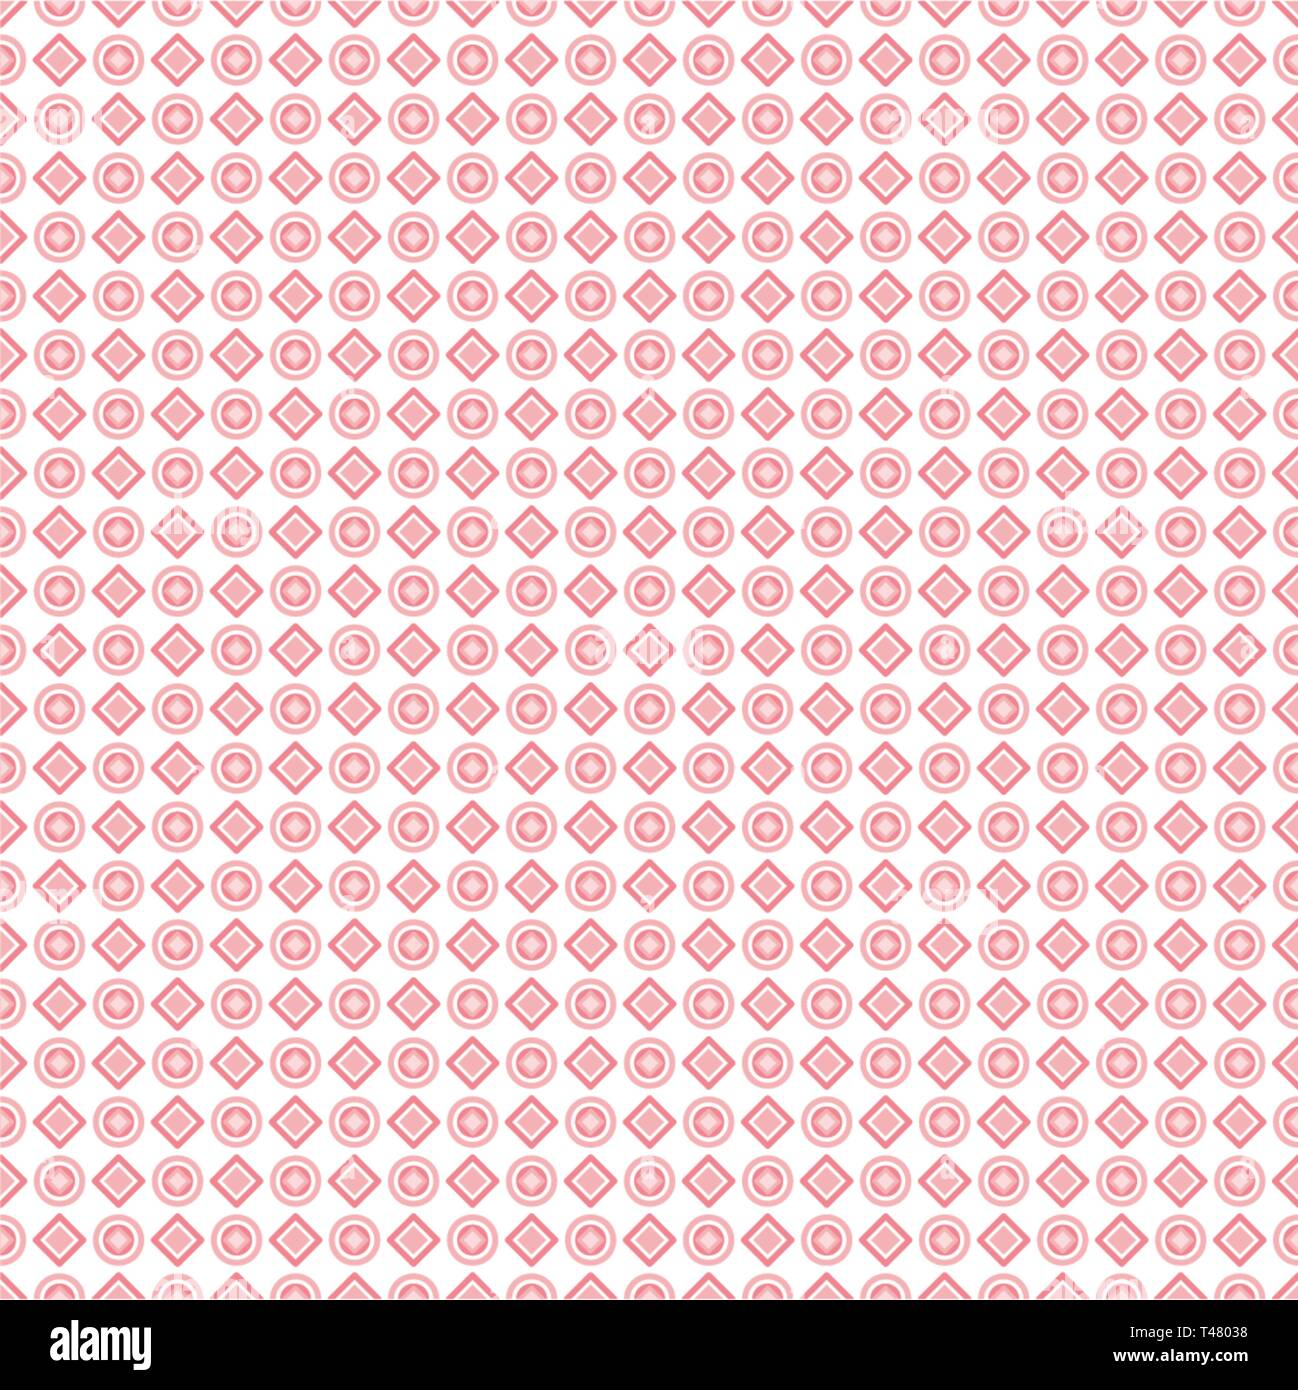 Seamless pattern of abstract  geometric shapes for fabrics, wallpapers, tablecloths, prints and designs.The EPS file (vector) has a pattern that will  - Stock Vector